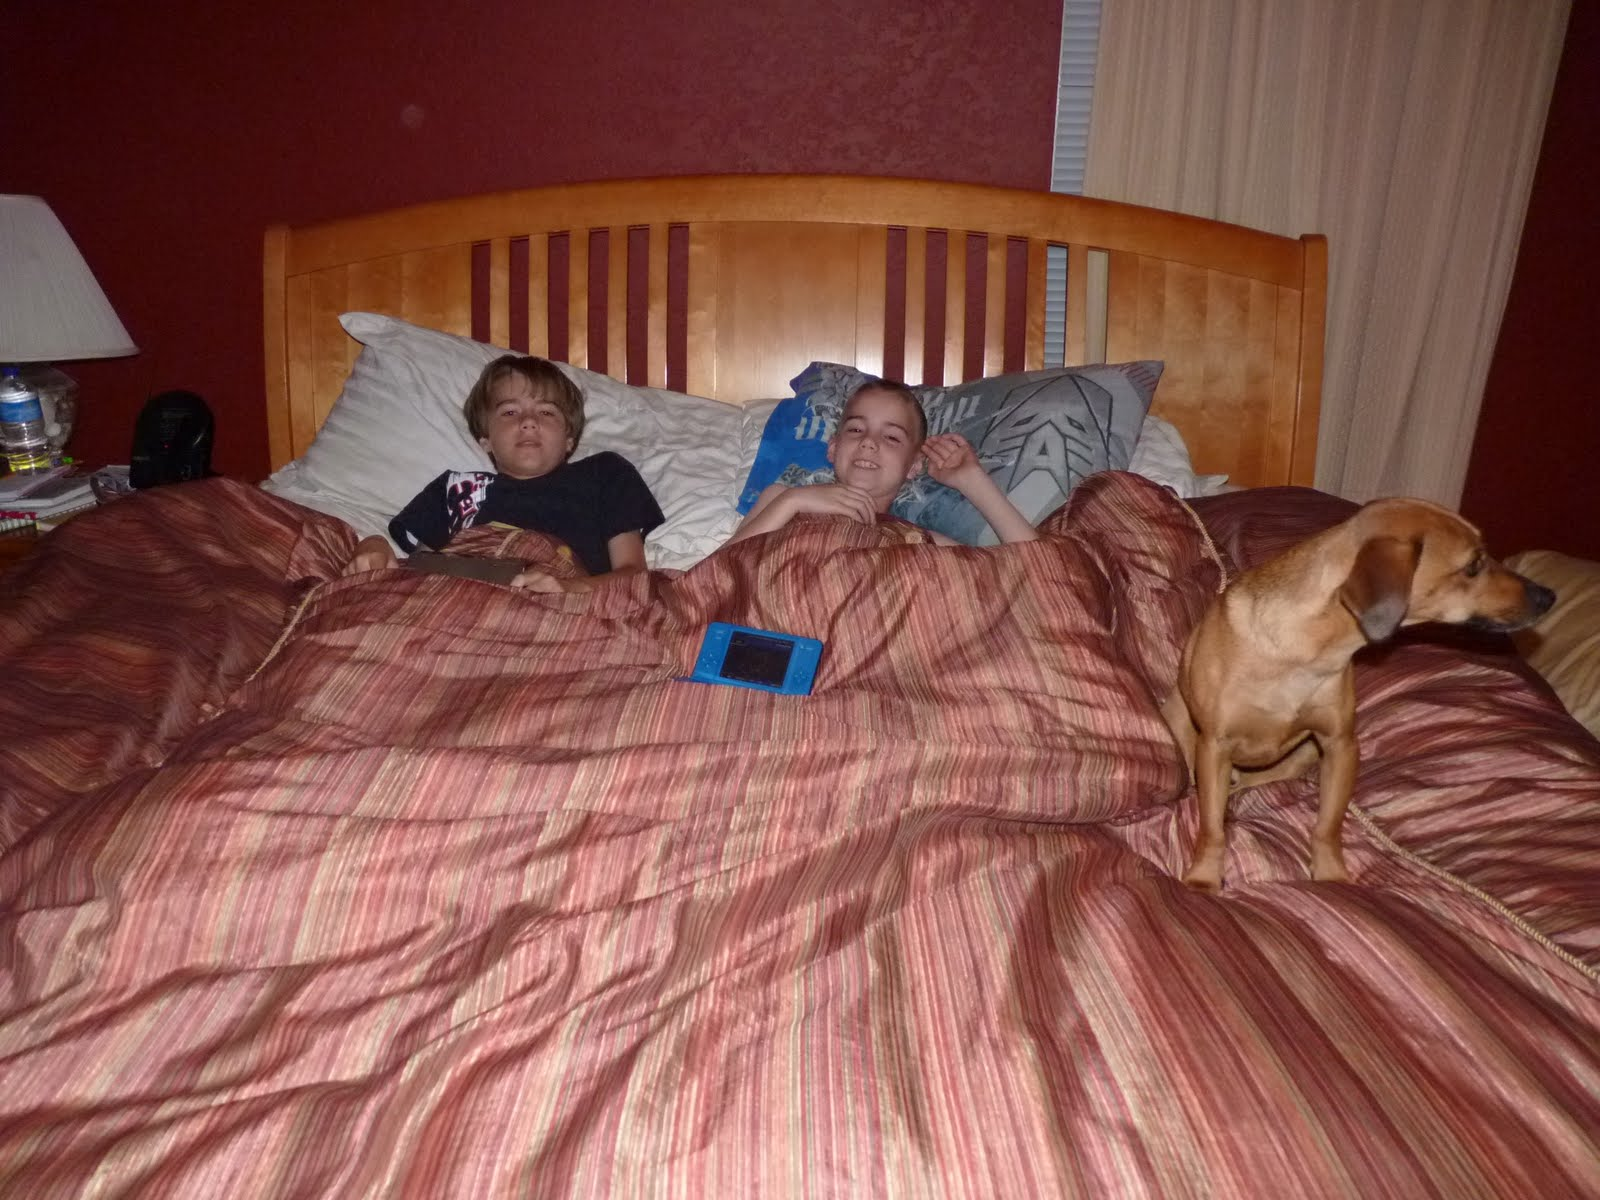 bibigon DS #1 and #2 and Moose. The boys get to fall asleep in my room. One of them will be sent to the couch when I go to bed.